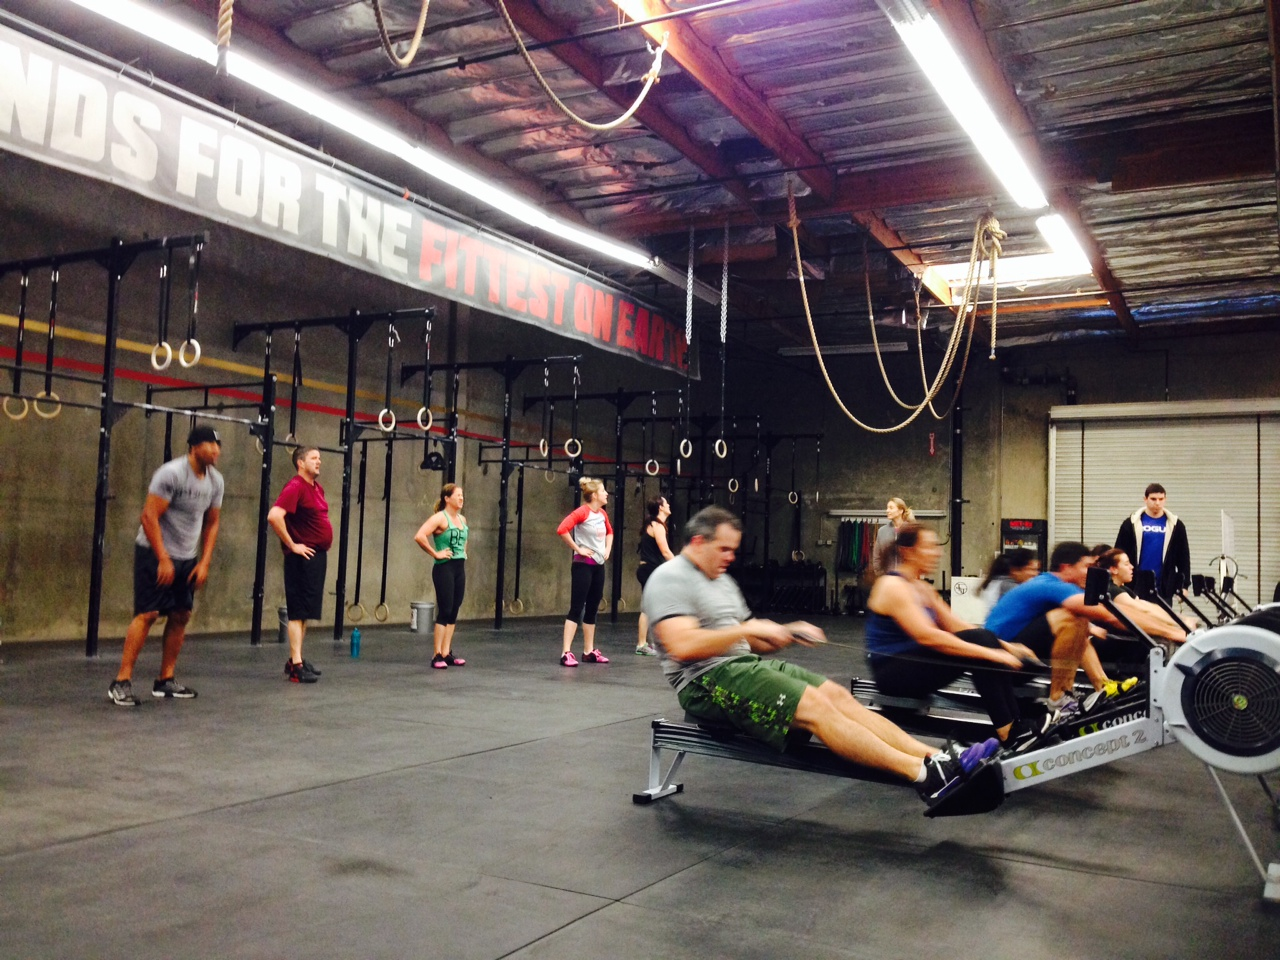 Rowing and burpee EMOM, delivers every time